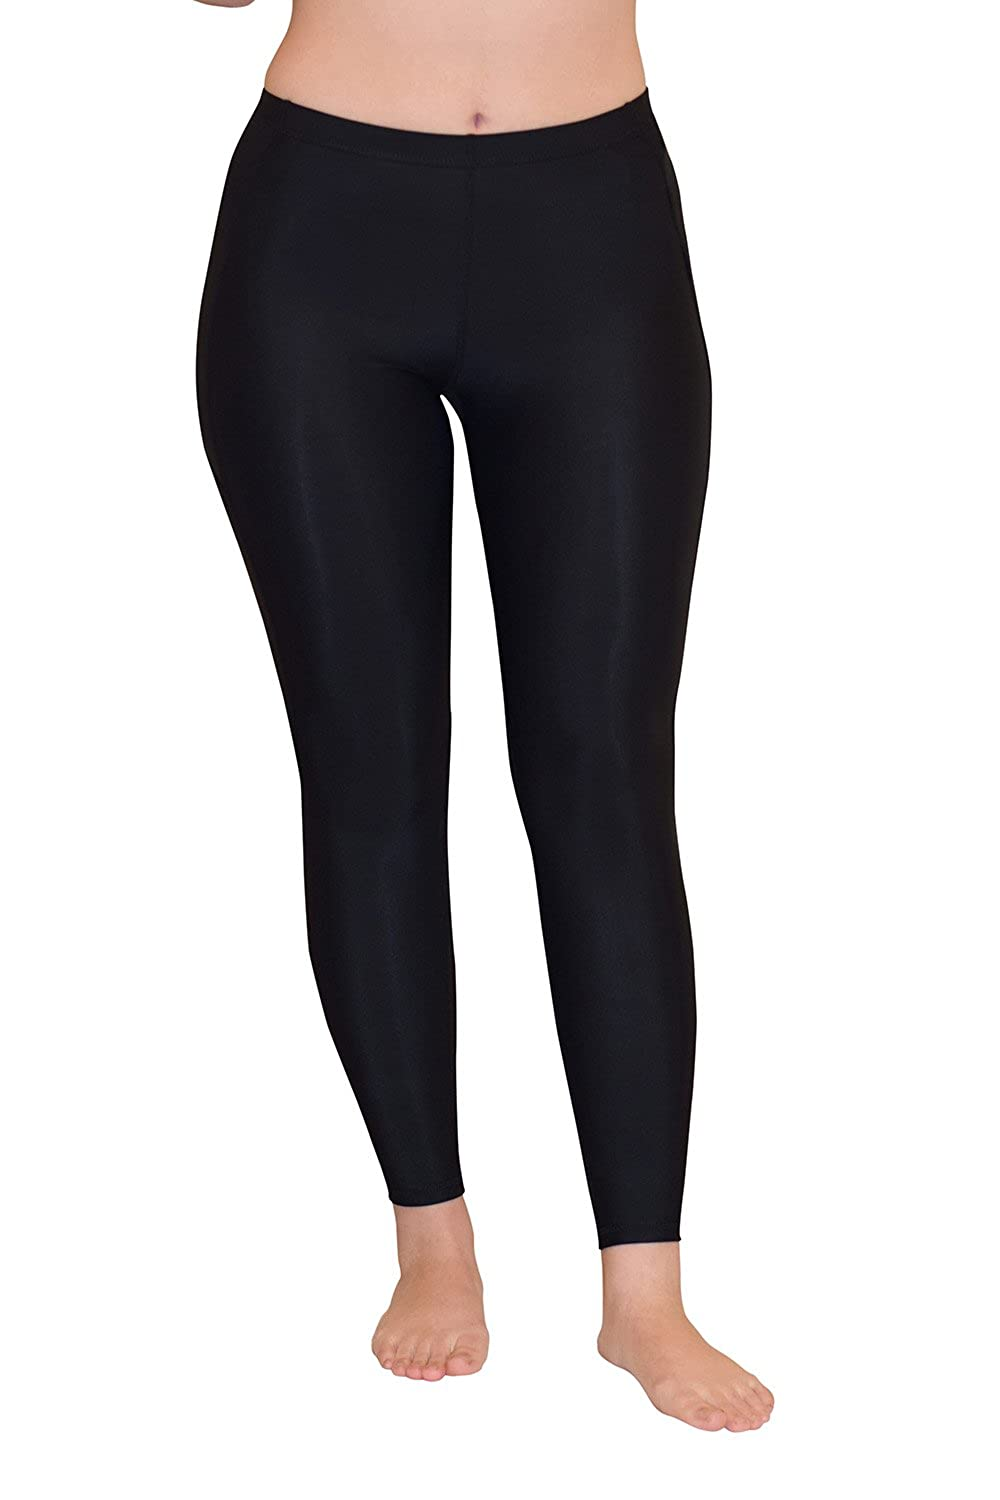 Women Stretch Tights Leggings Swim Gym UV Protective UPF50+ Black S502-N